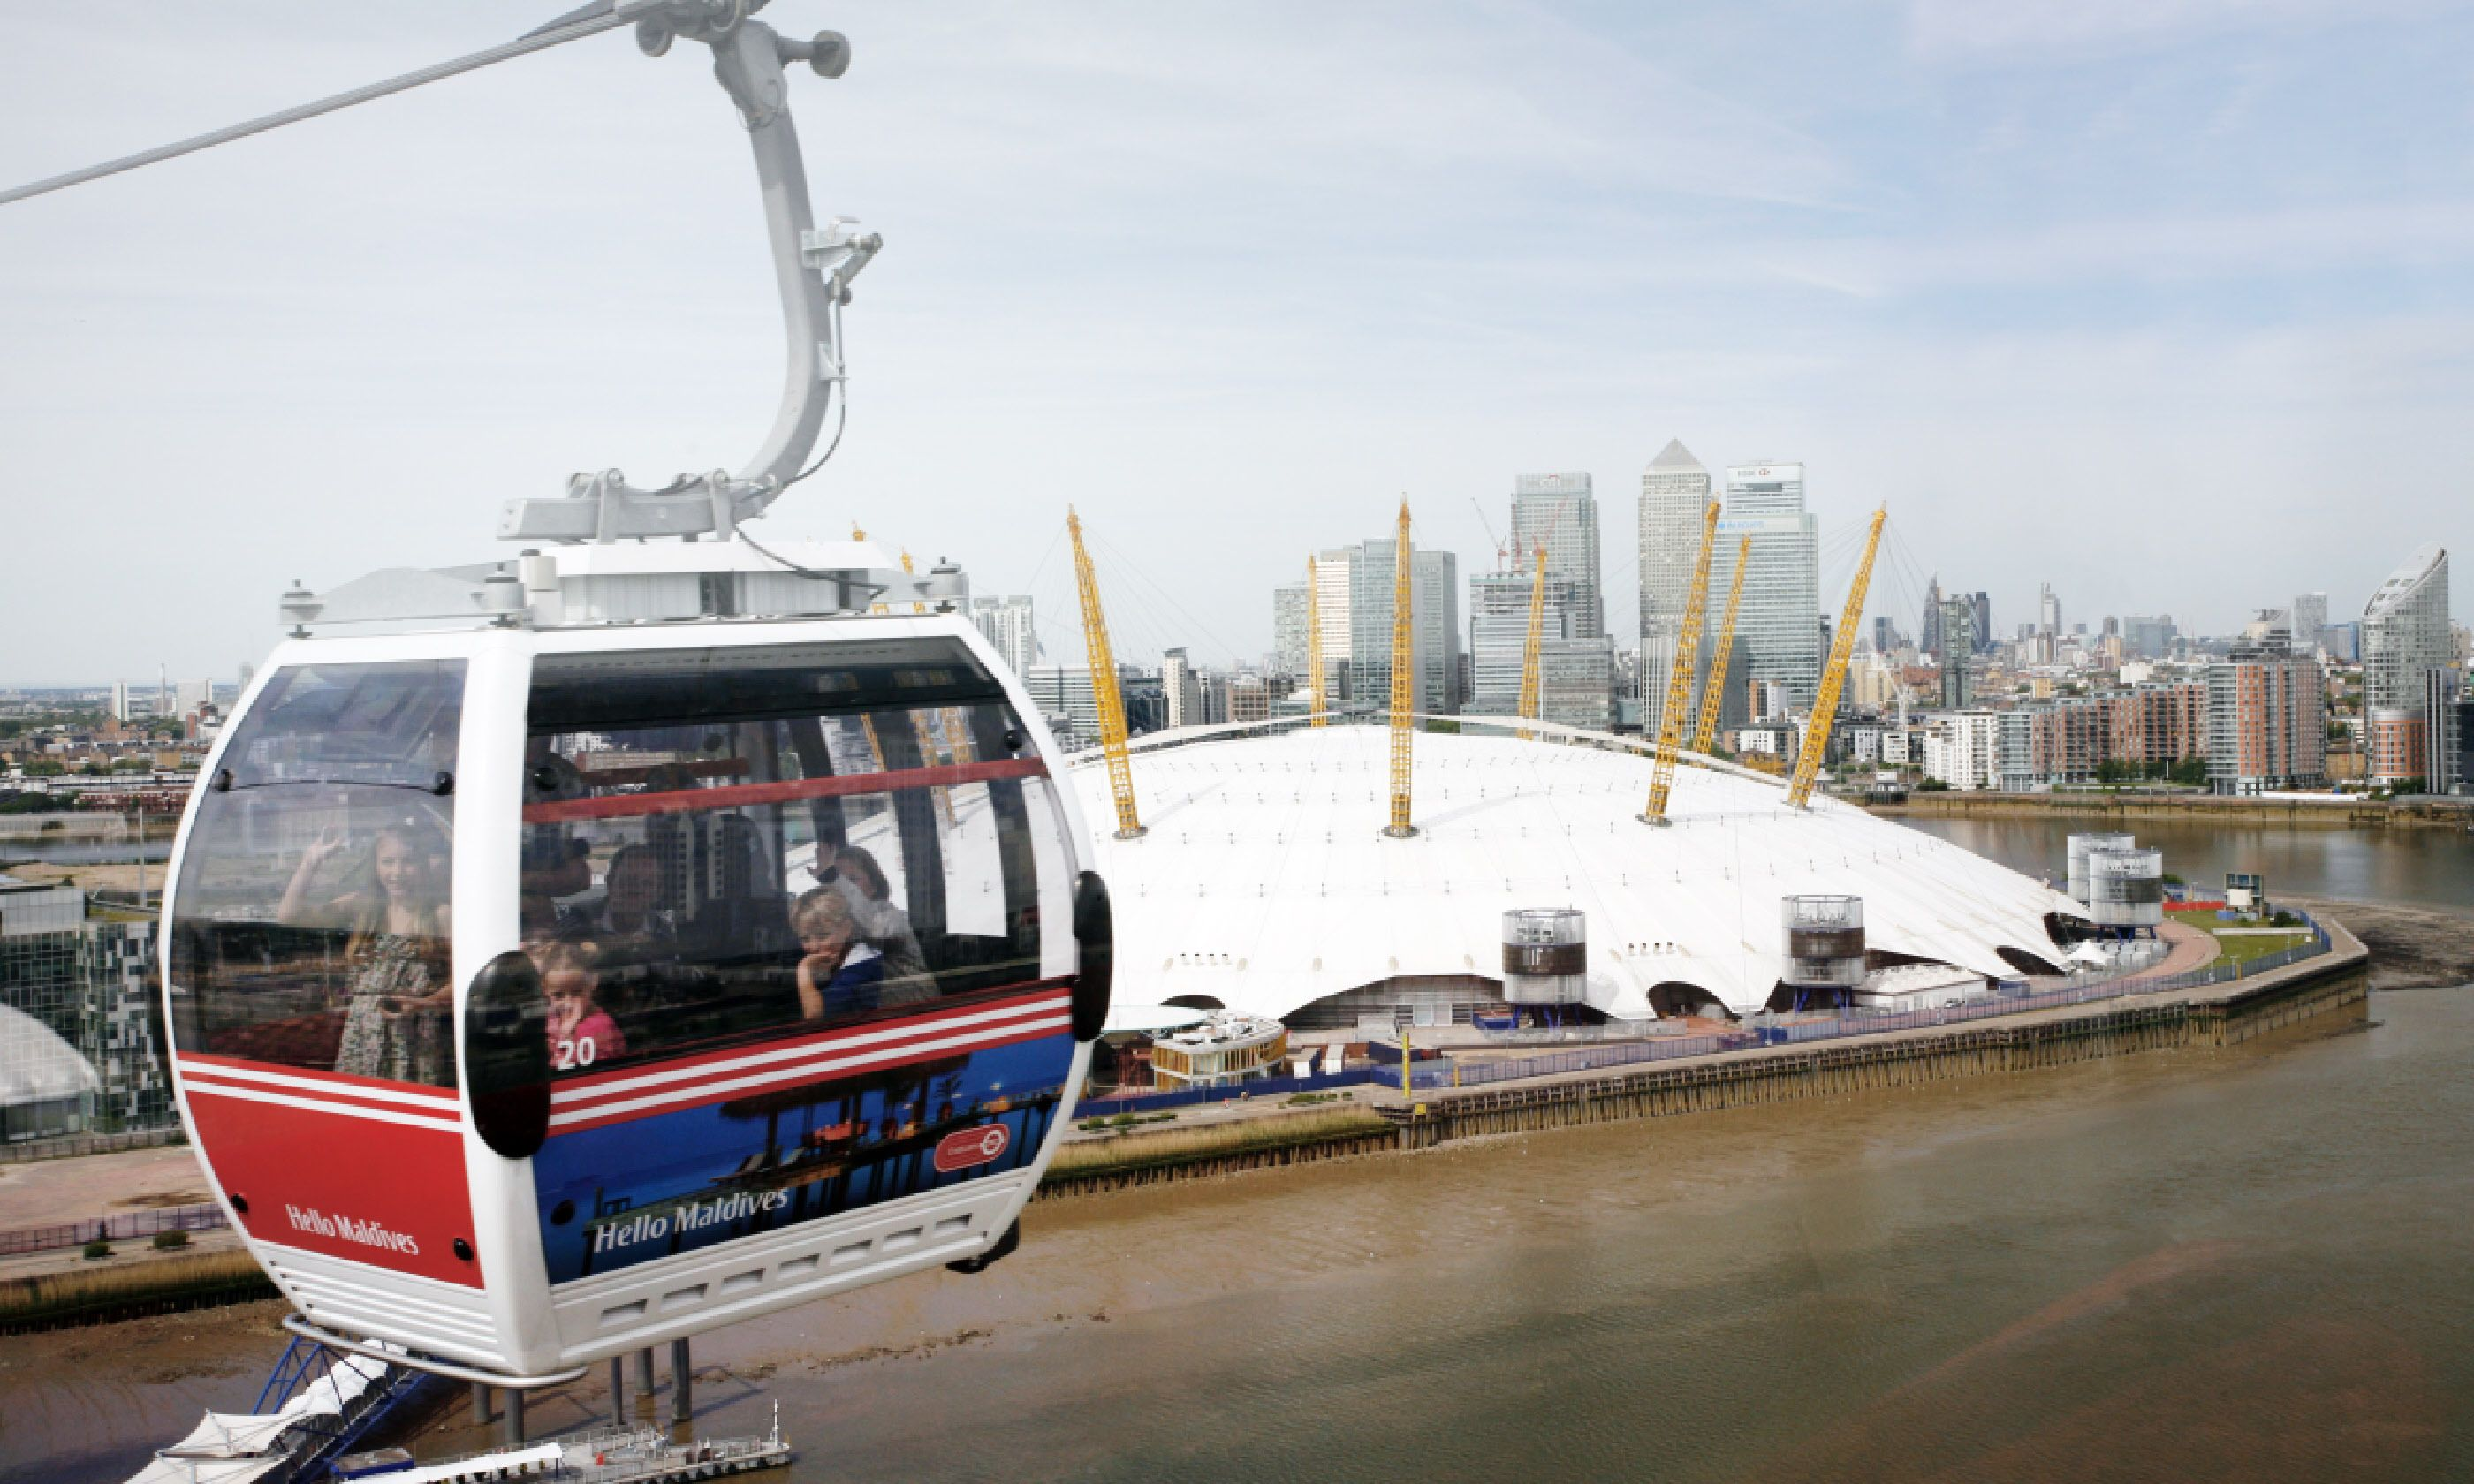 Gondolas of the Emirates Air Line cable car (Shutterstock)